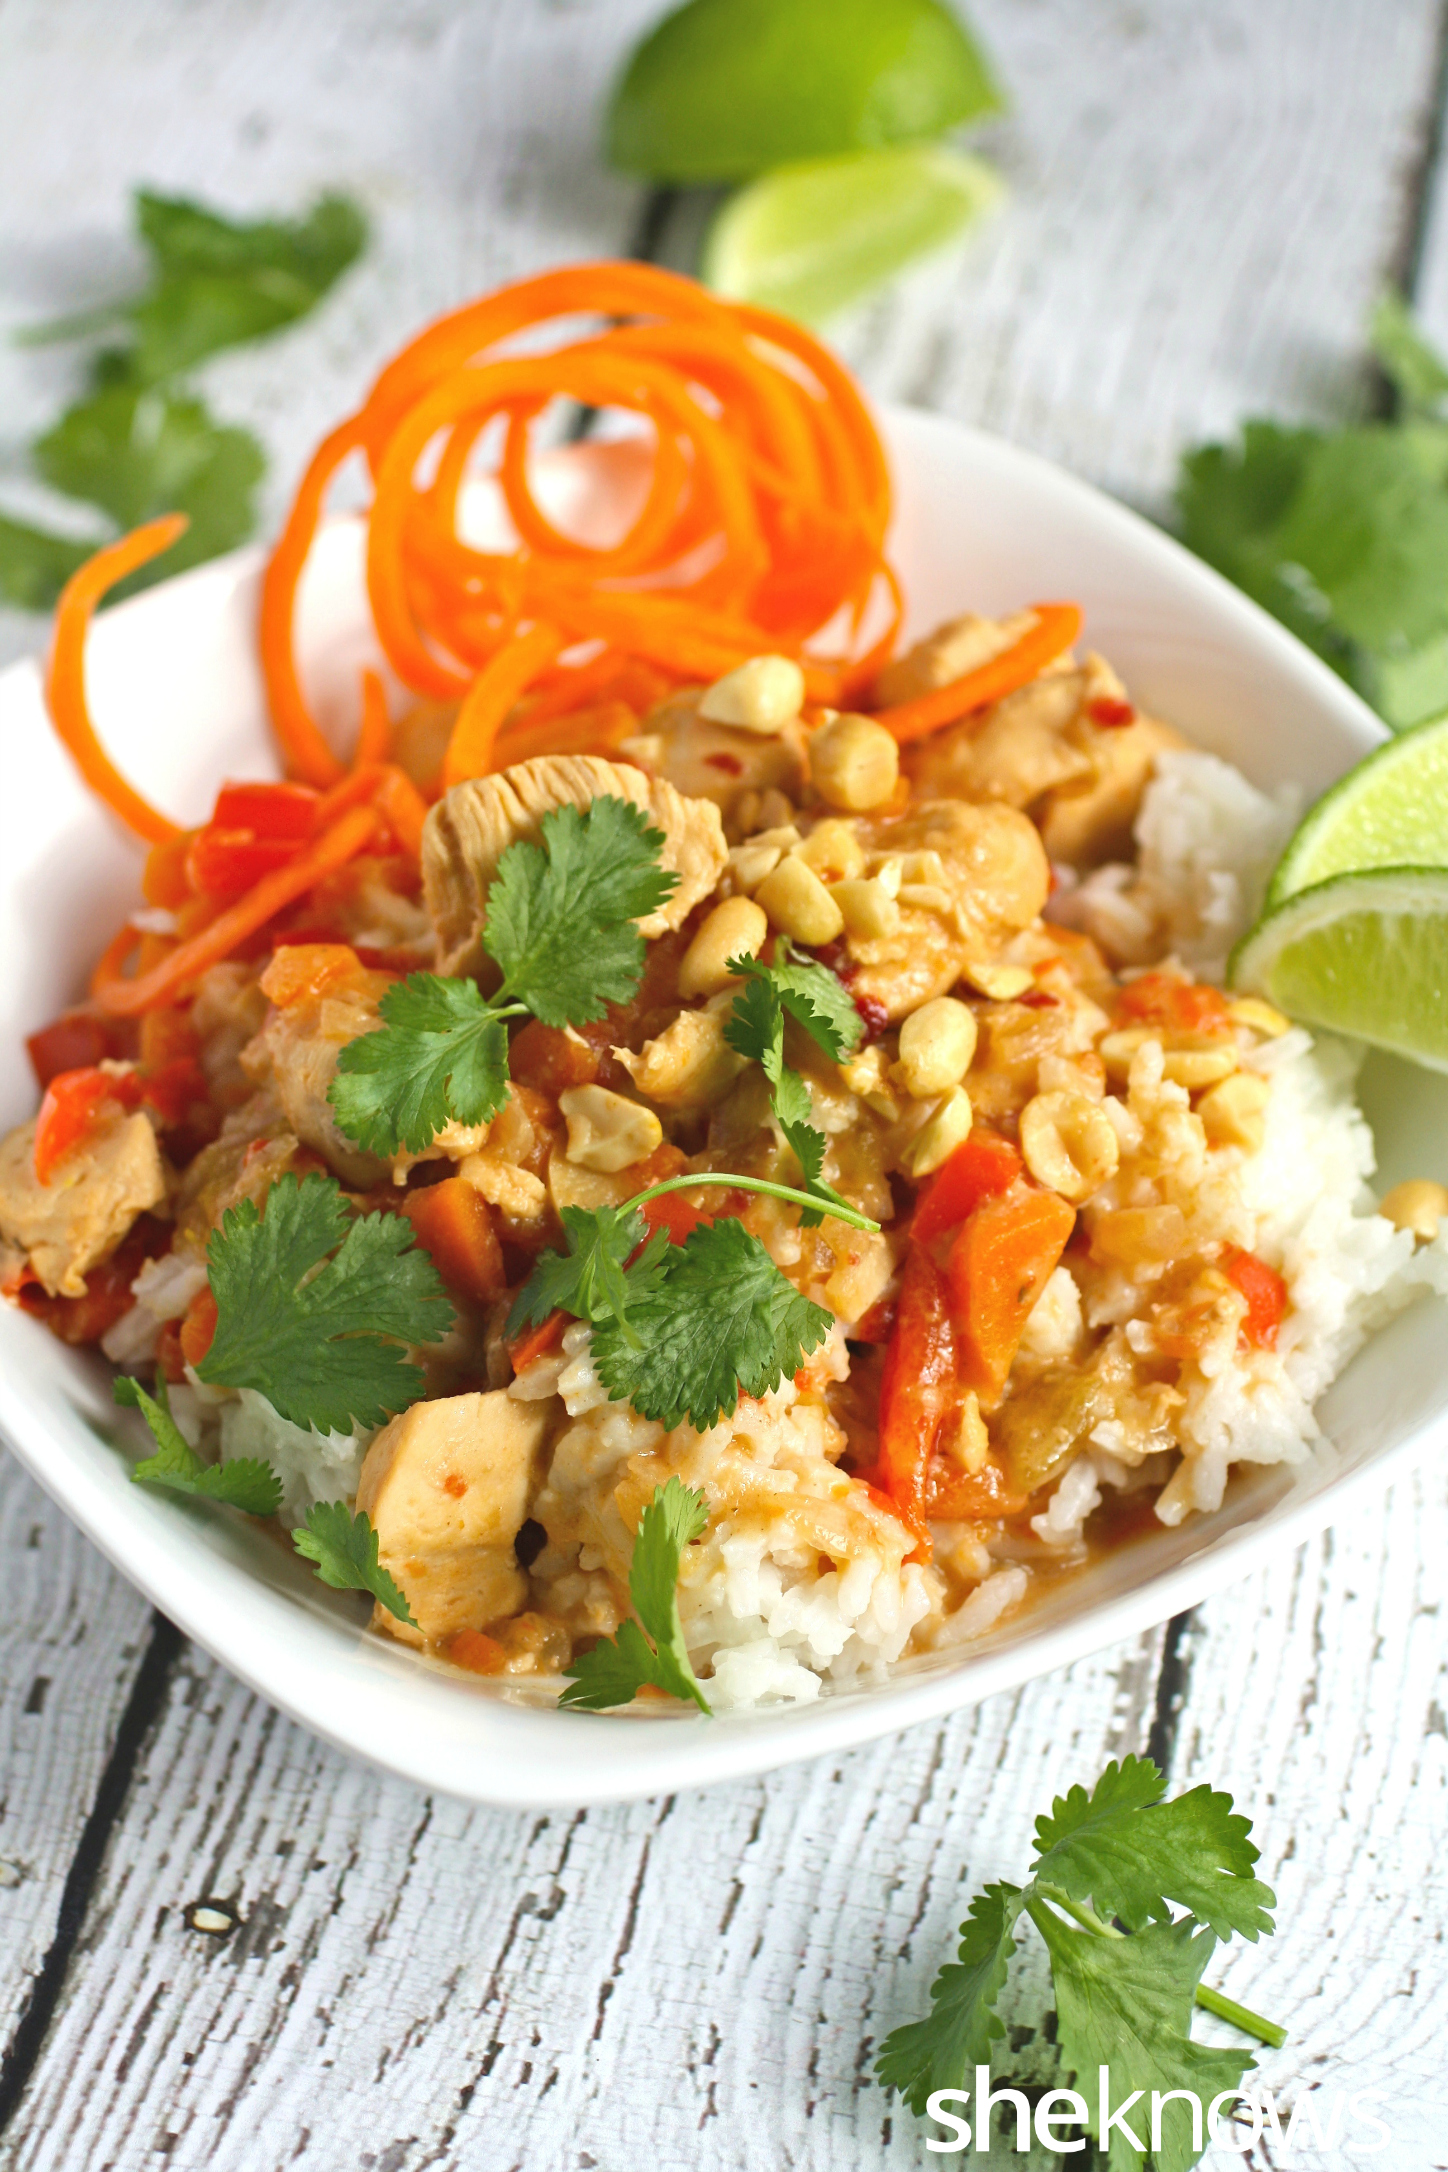 Serve this Slow cooker Sunday special: Peanutty Thai chicken with white rice